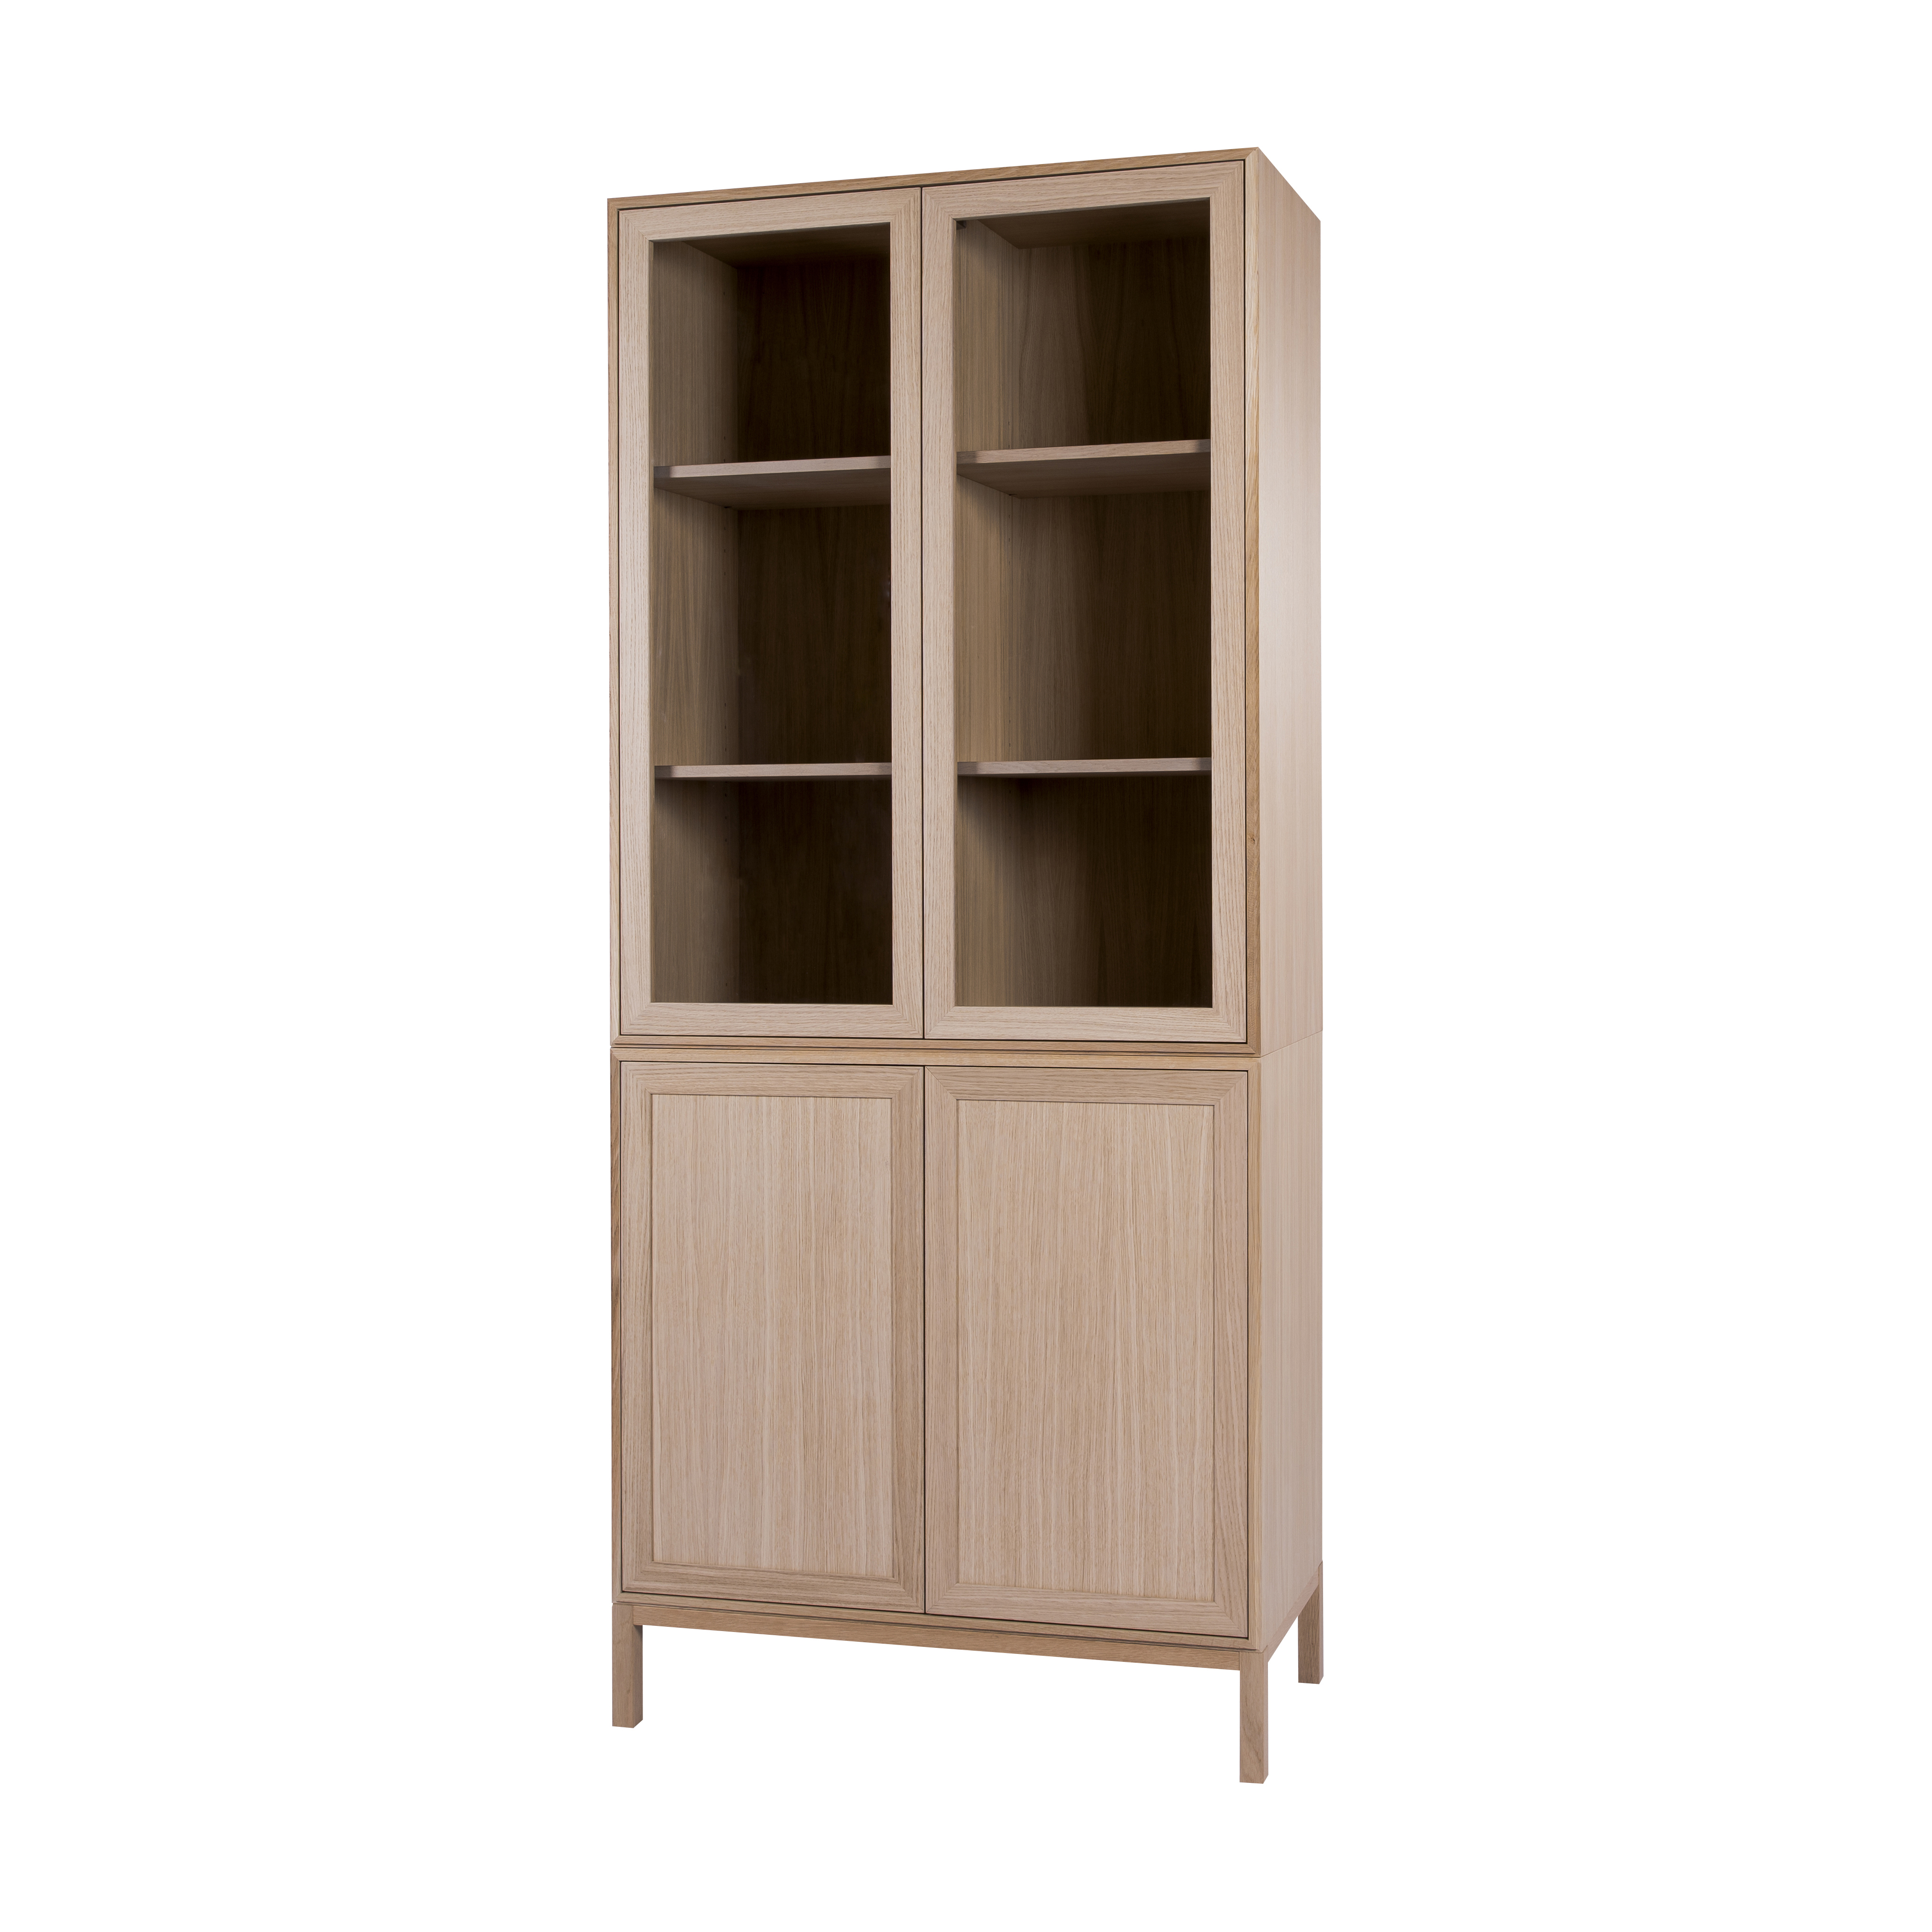 EDGE NATURAL OAK VITRINSKÅP HÖGT 86Bx38Dx198H